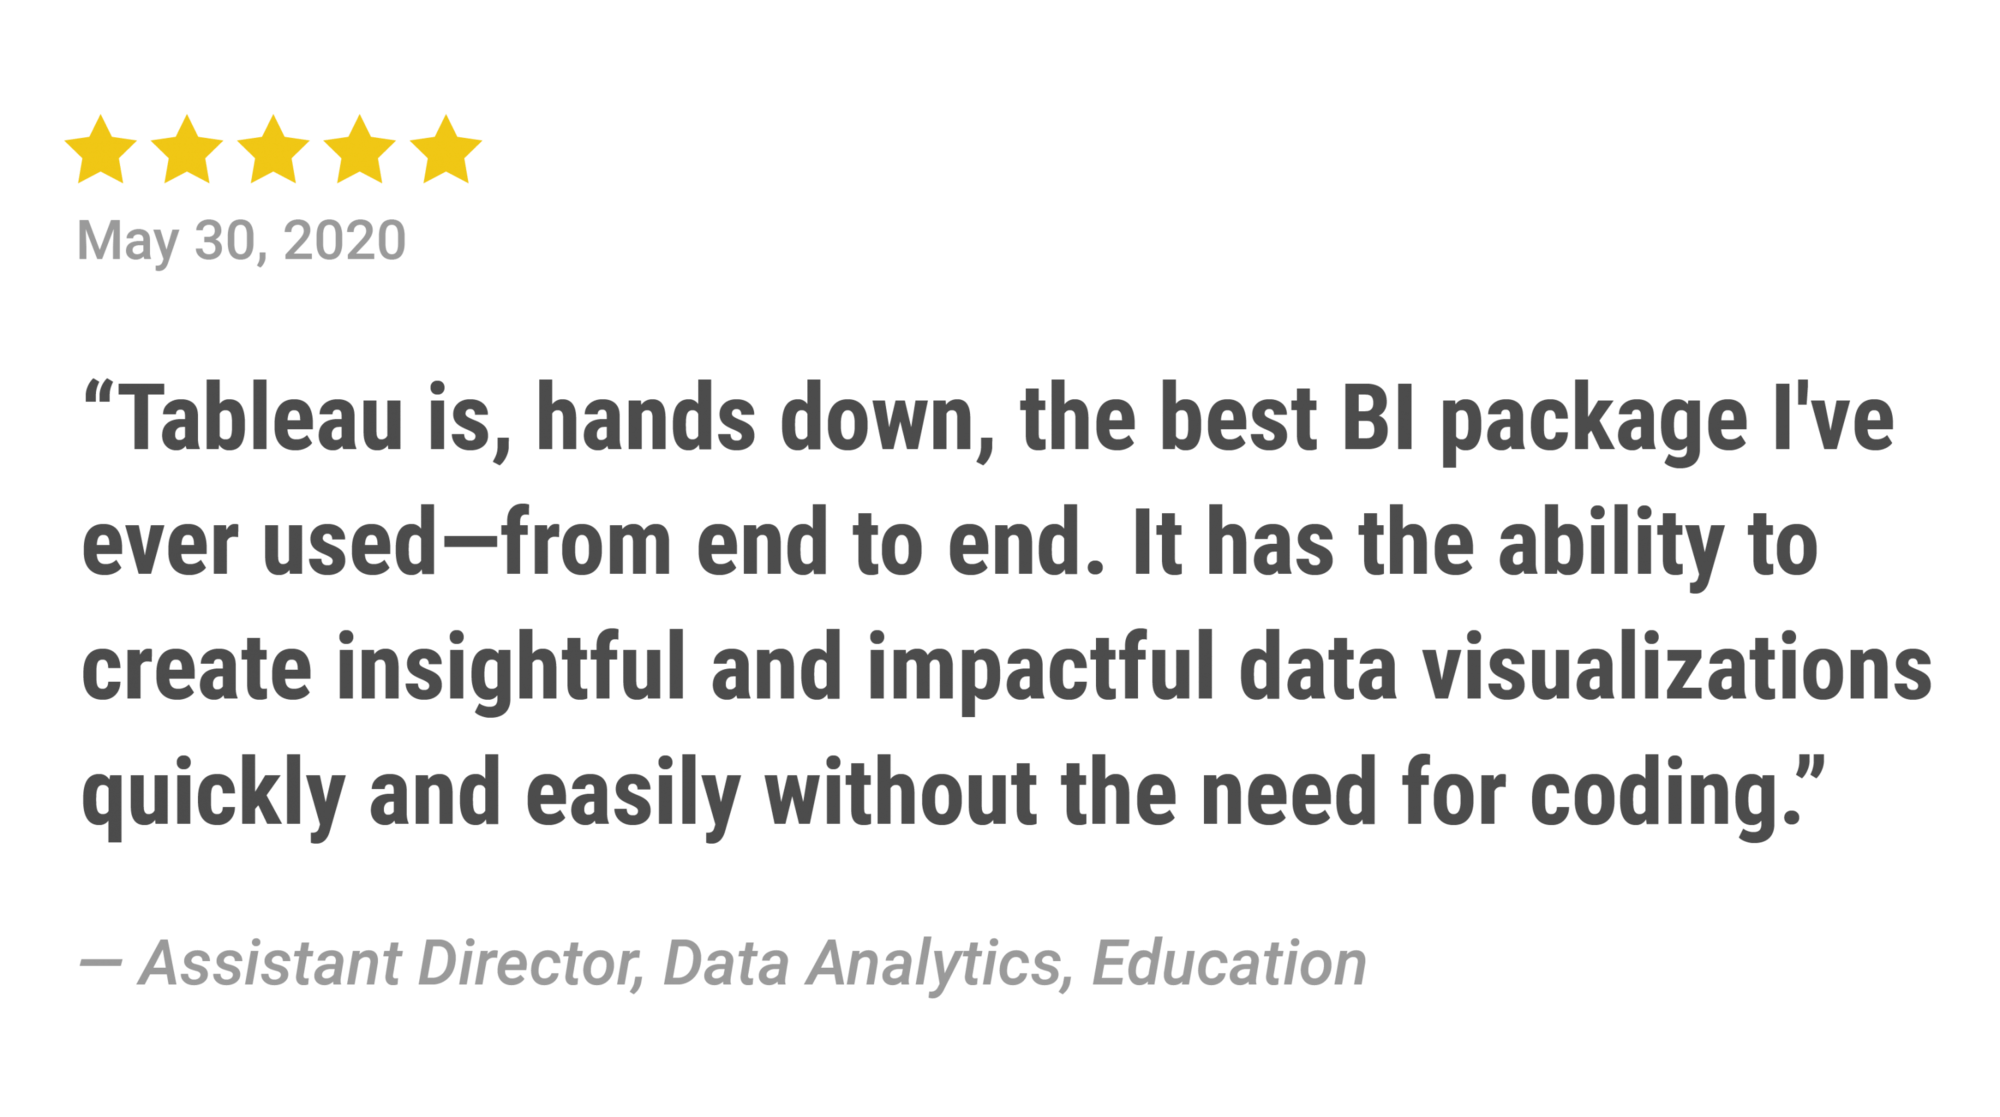 Five stars: Tableau is, hands down, the best BI packagae I've ever used – from end to end. It has the ability to create insightful and impactful data visualizations quickly and easily without the need for coding.